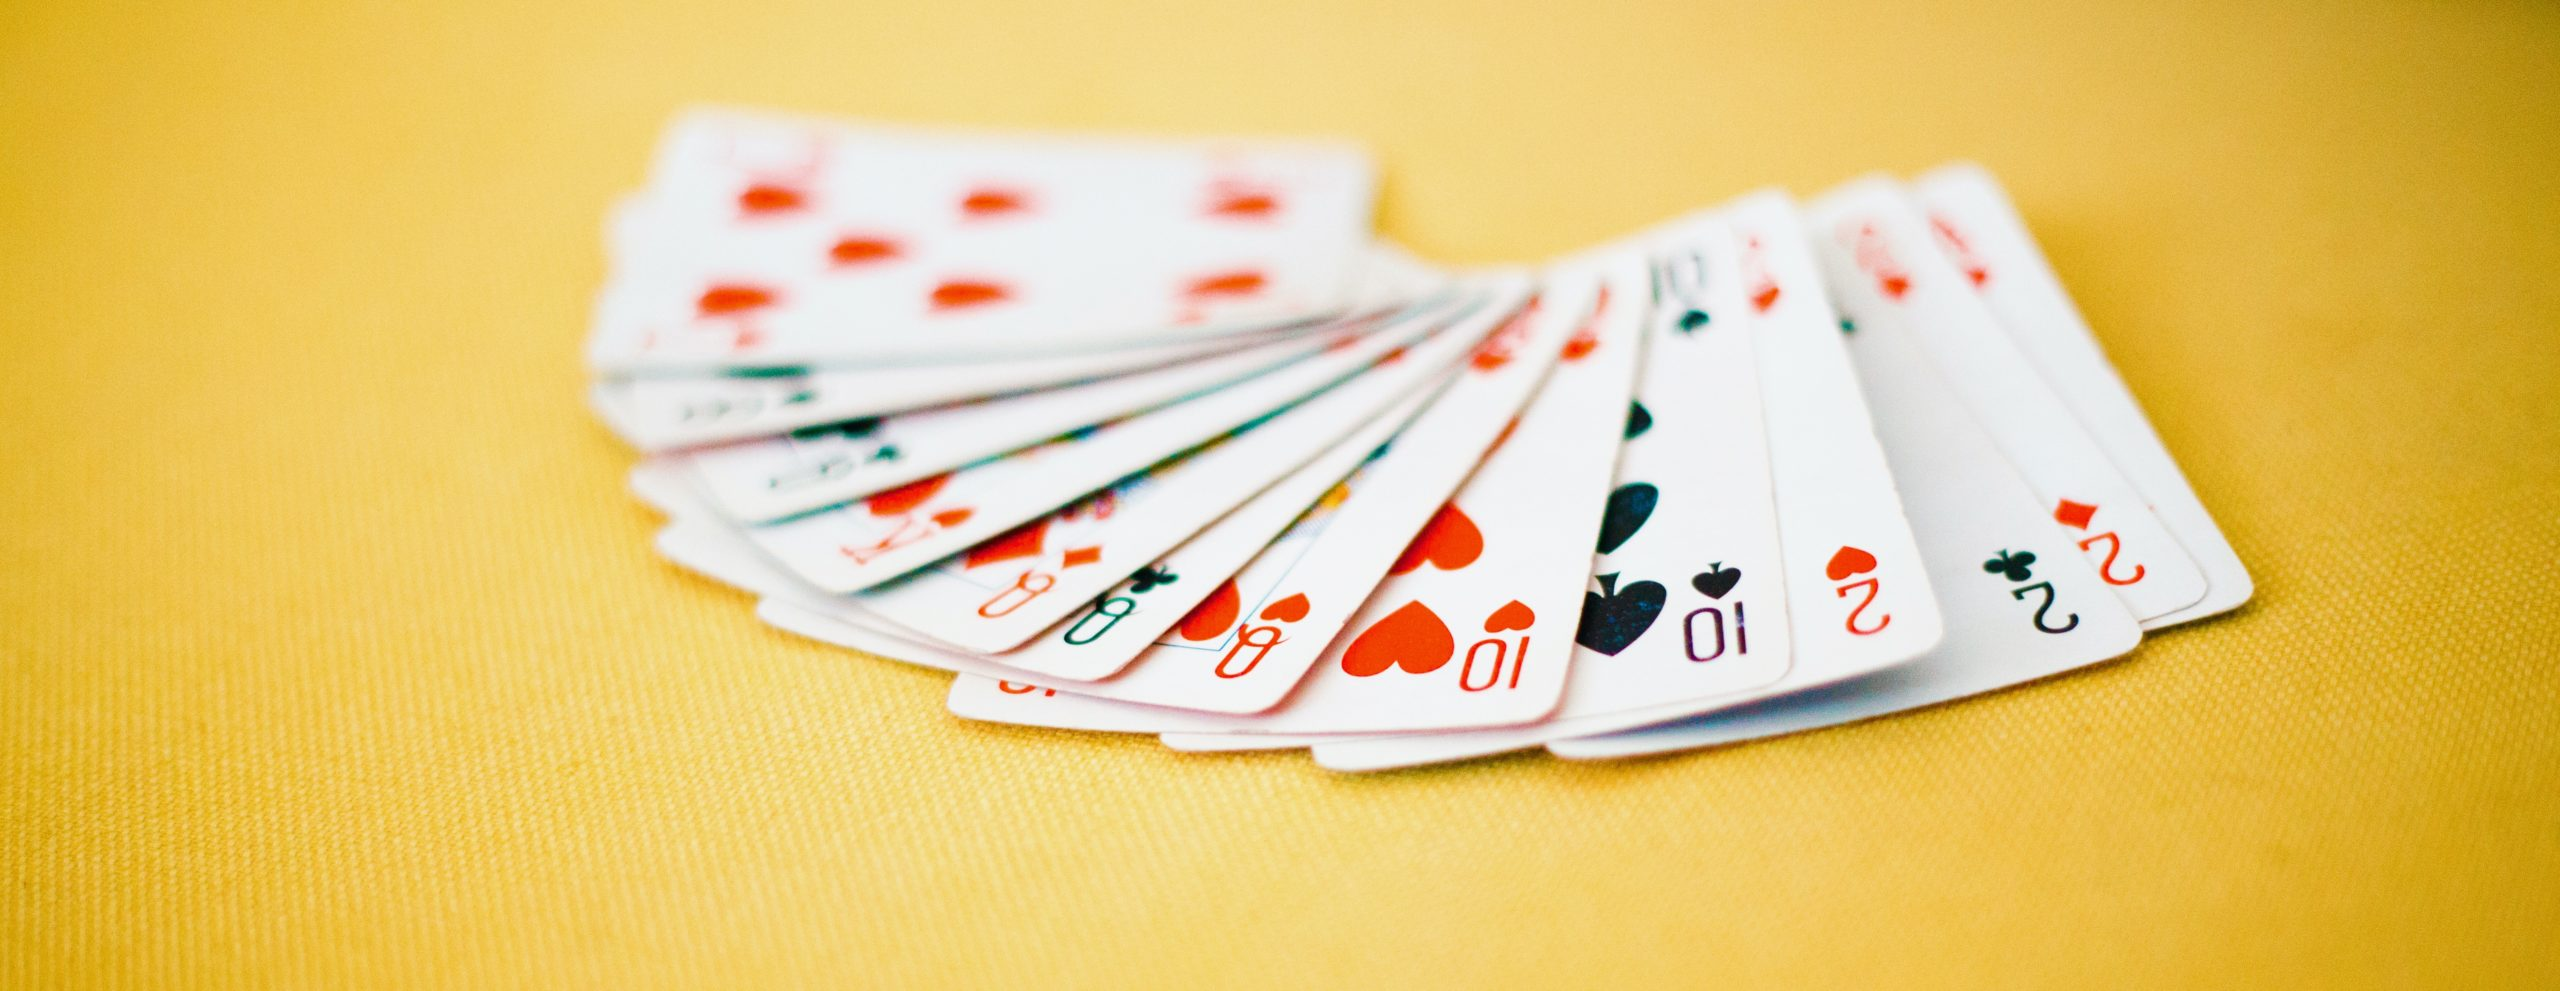 You cannot go past blackjack for the ultimate online starter. Play to win at Joe Fortune